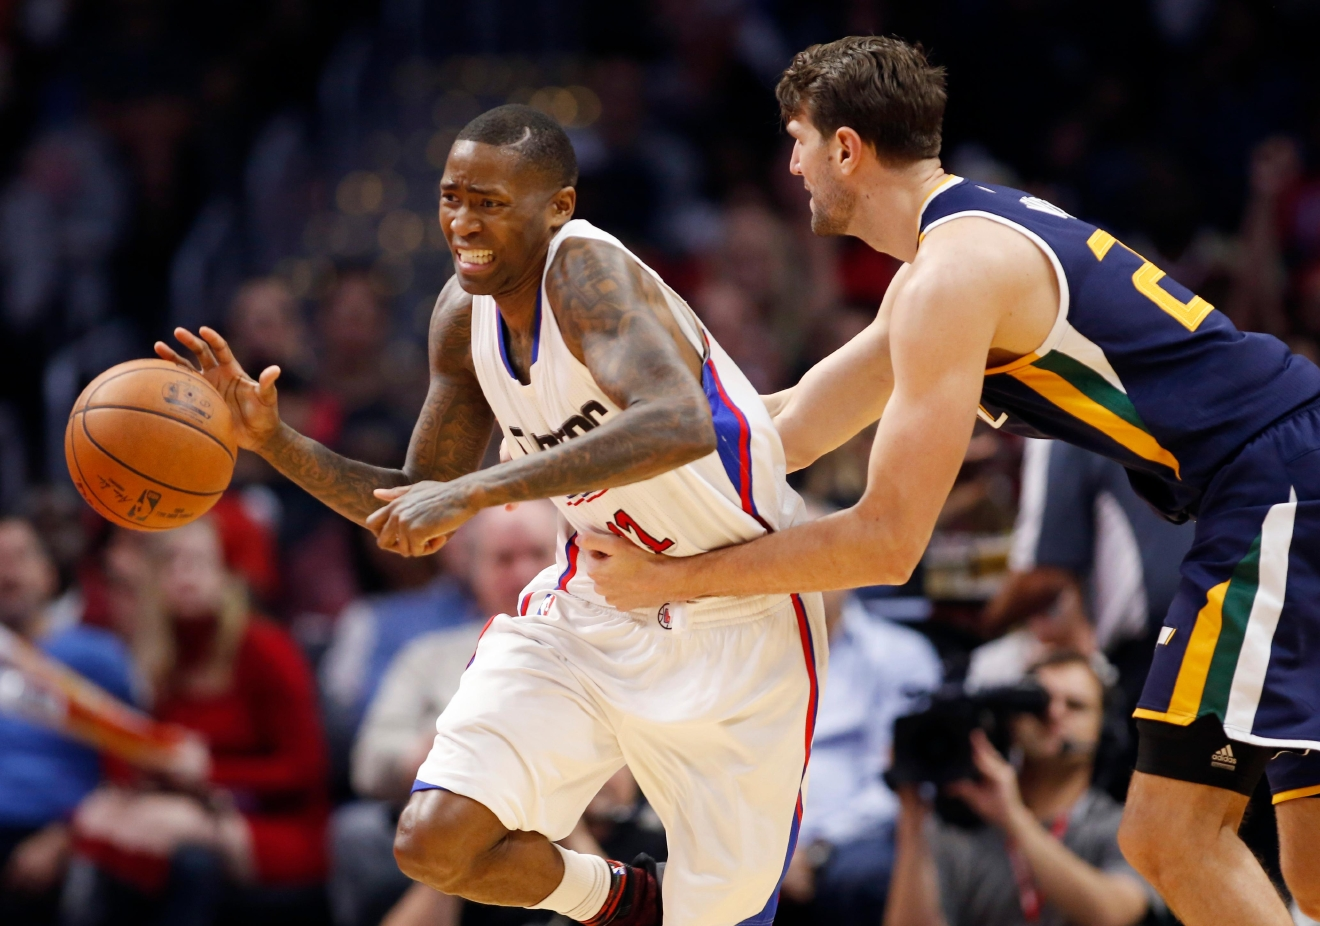 Los Angeles Clippers guard Jamal Crawford, left, is fouled by Utah Jazz center Jeff Withey, right, during the second half of an NBA basketball game, Saturday, March 25, 2017, in Los Angeles. The Clippers won 108-95. (AP Photo/Danny Moloshok)